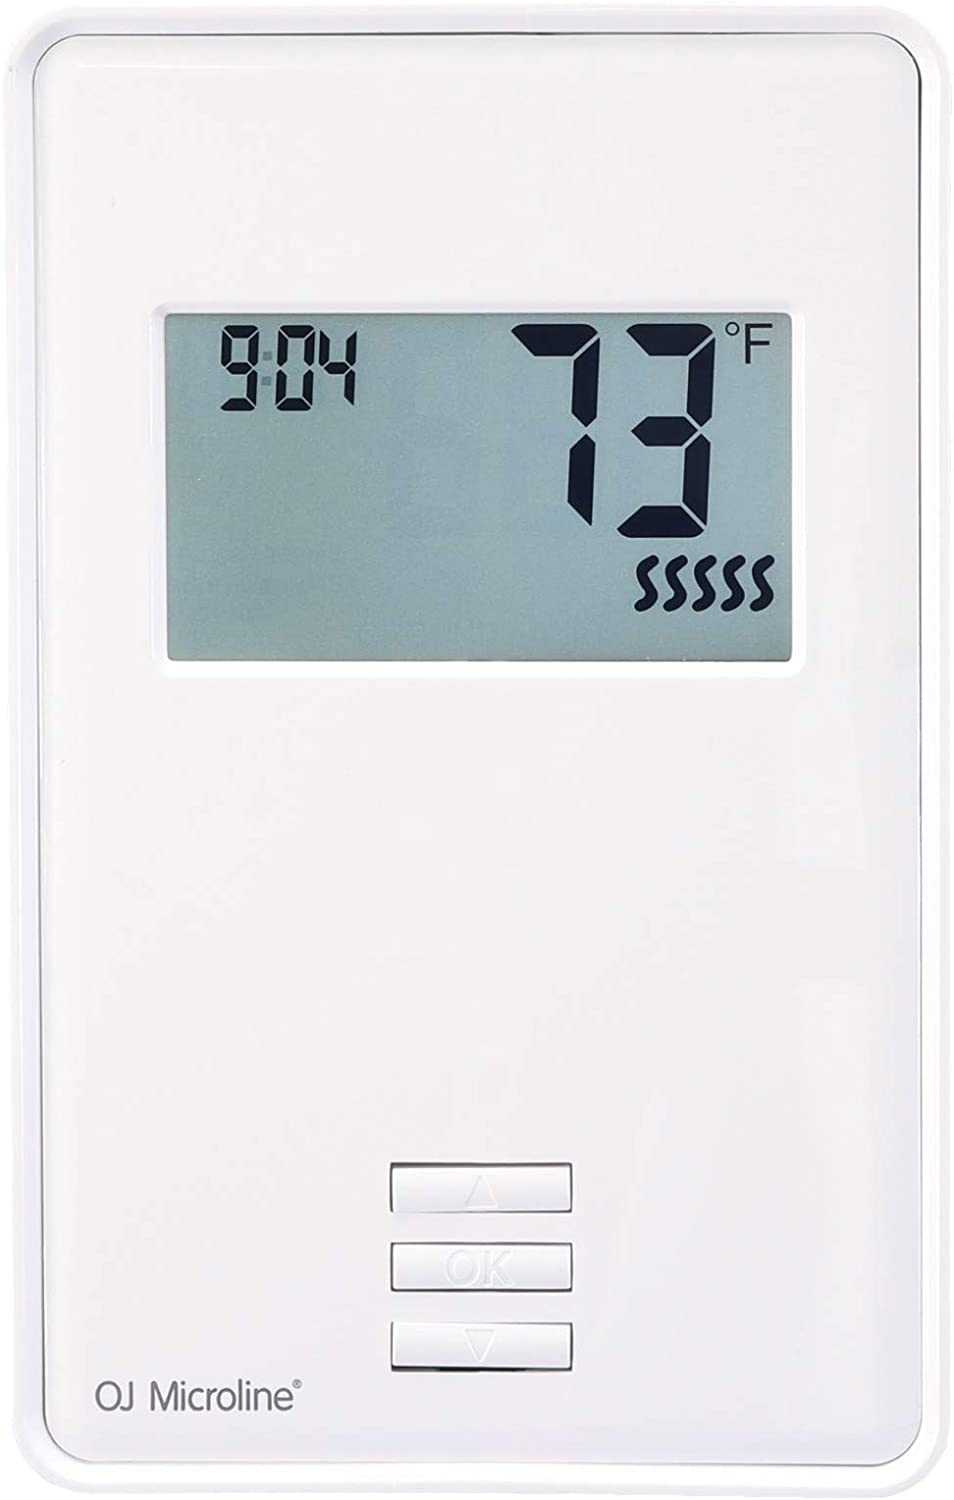 OJ Microline Thermostat with Built-in GFCI. Non Programmable Thermostat for Infloor Heating System, with Dual Sensing and Dual Voltage 120v & 240v Capabilities. Includes Floor Sensor, UTN4-4999